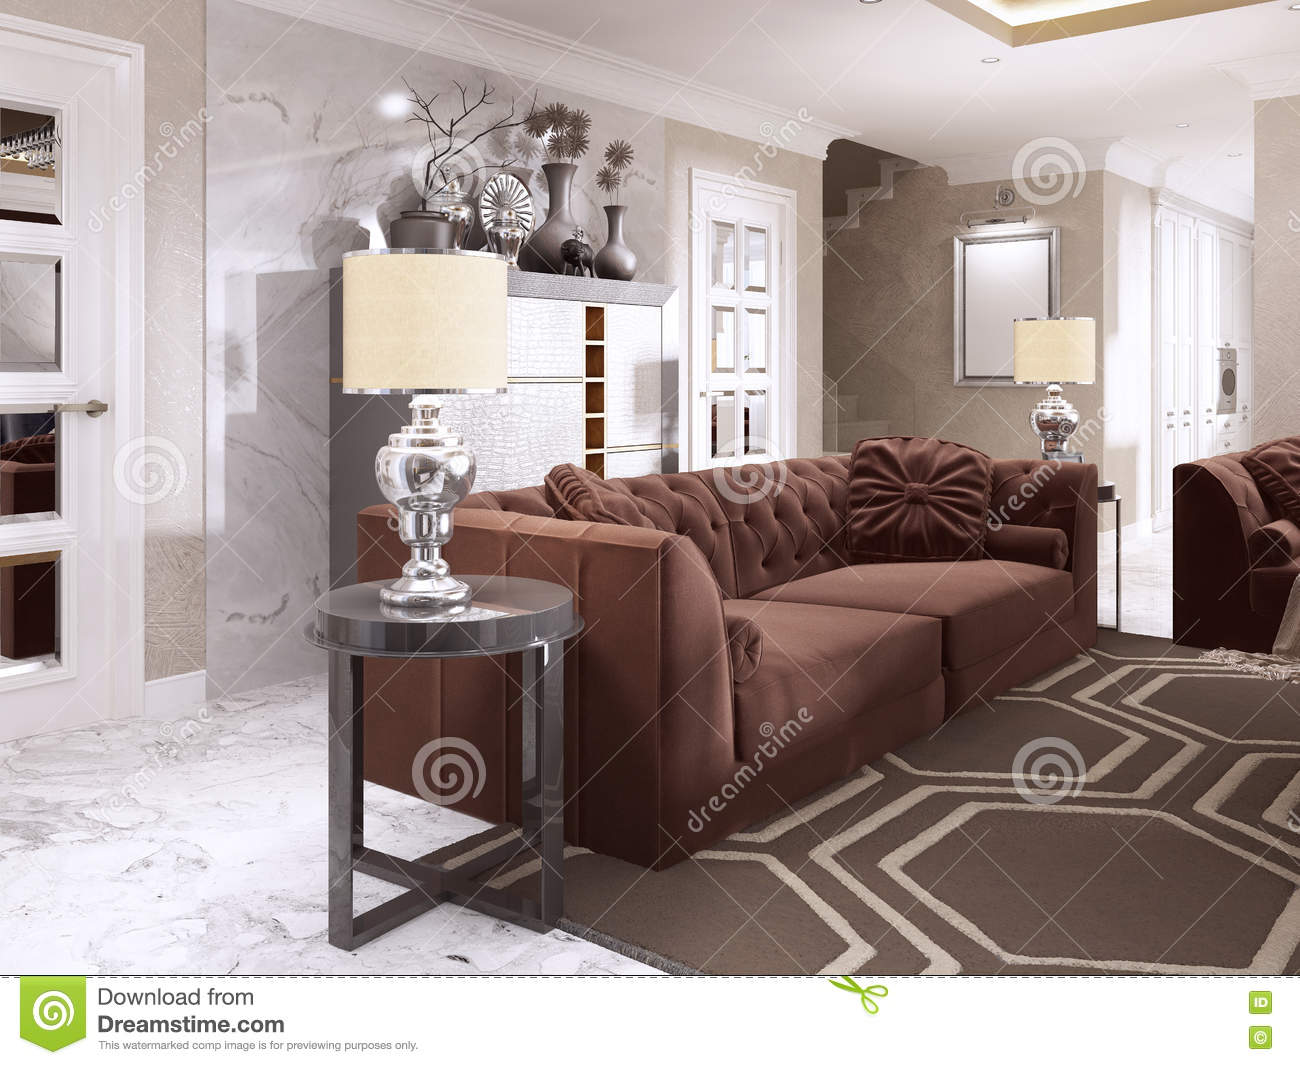 Maroon Sofa With Black Side Tables And Table Lamps. Burgundy Sofa Living  Room Style Art Deco. 3D Render.